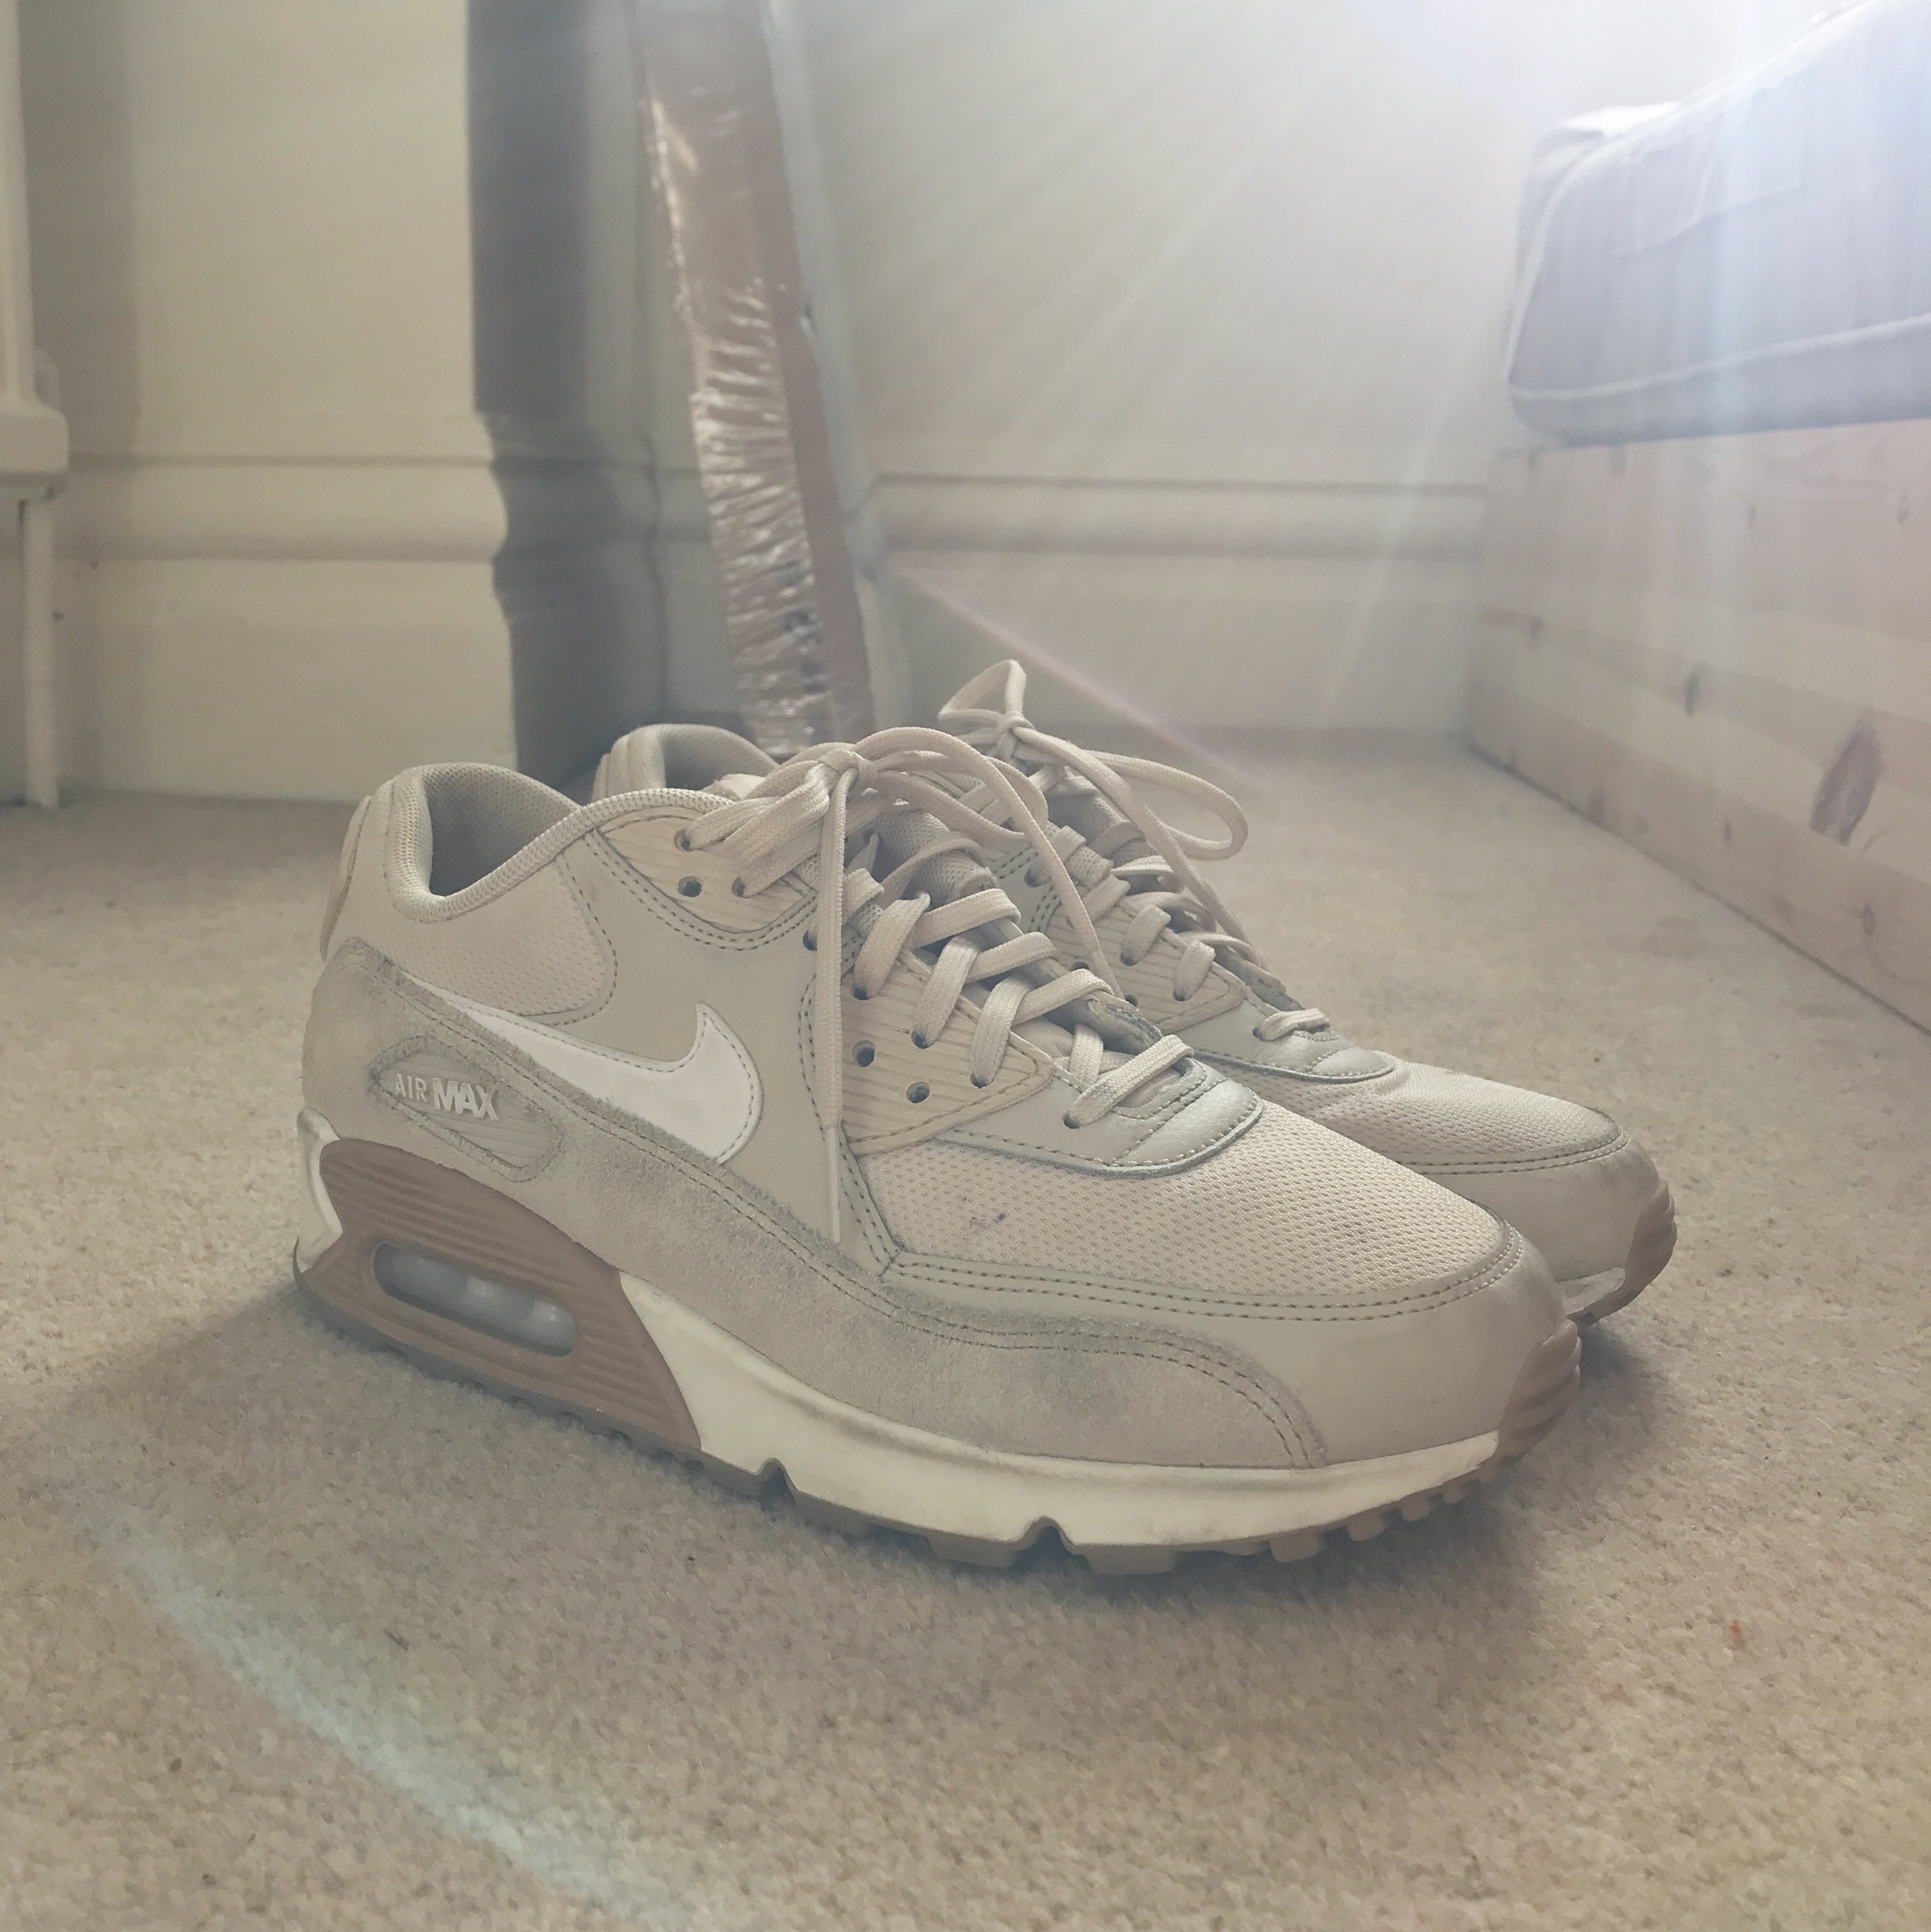 Nike Air Max 90 wheat Size 6 decent condition Depop